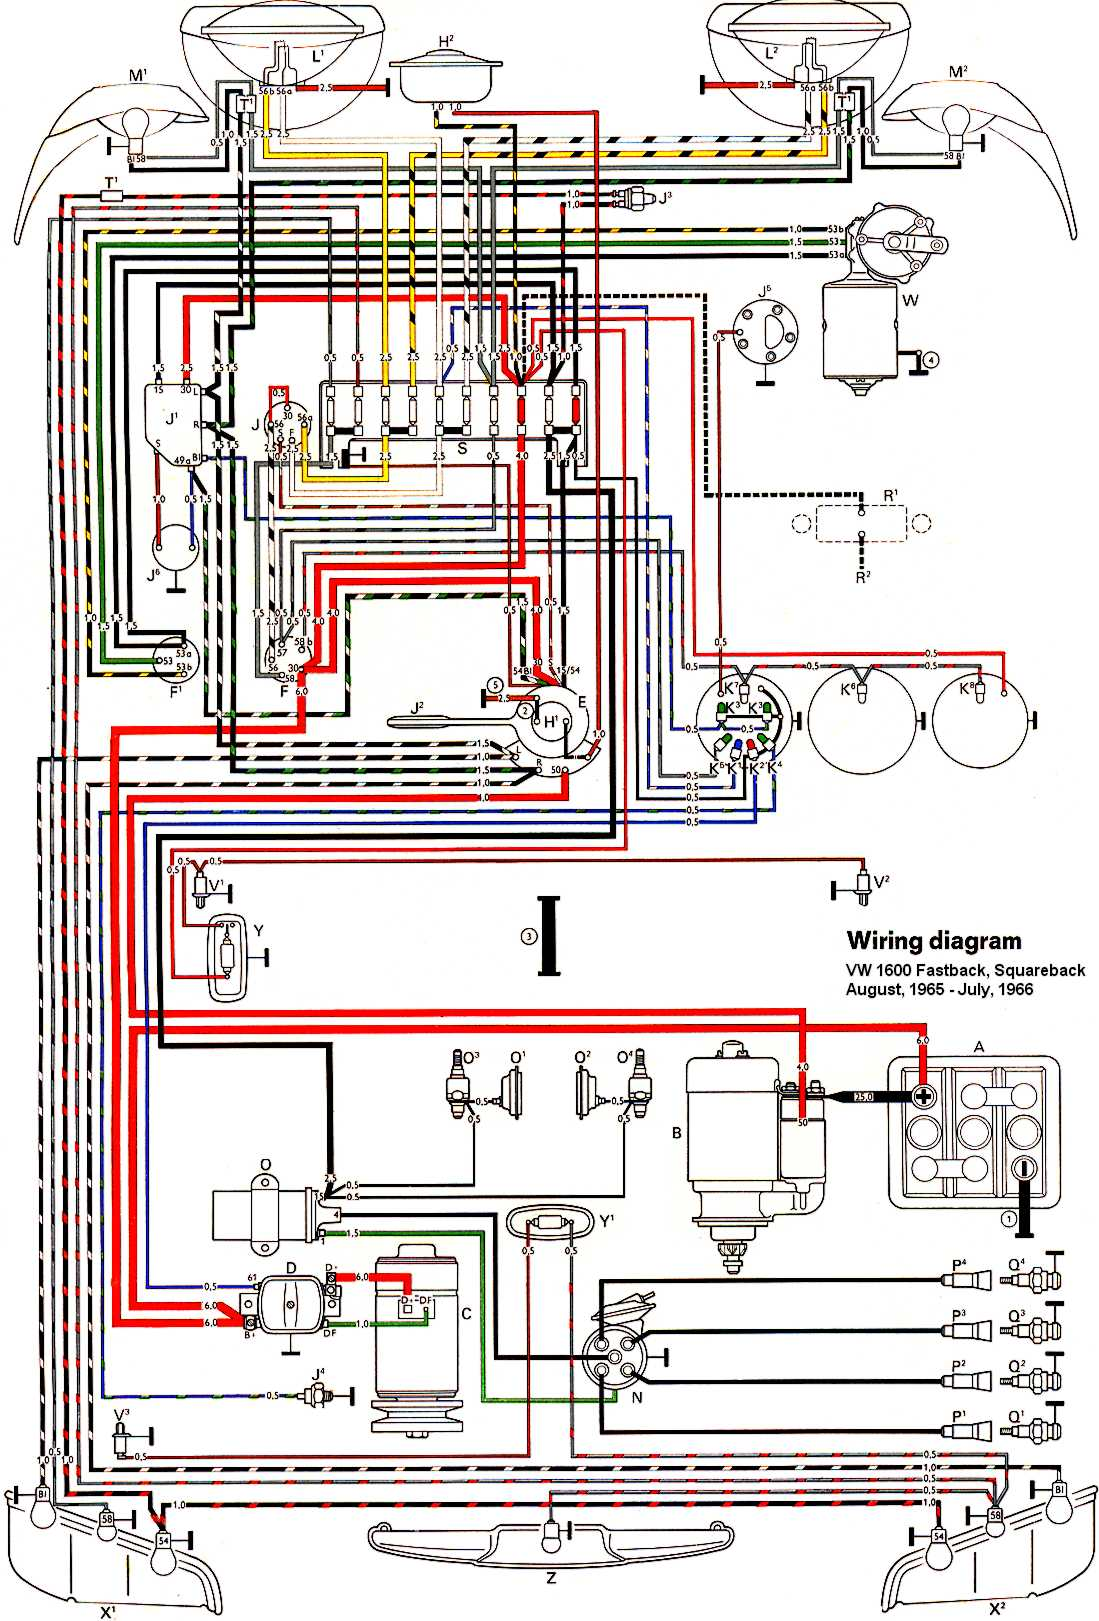 1968 vw wiring diagram online schematic diagram u2022 rh holyoak co 1979 VW Beetle Wiring Diagram Volkswagen 2002 Beetle Wiring Diagram